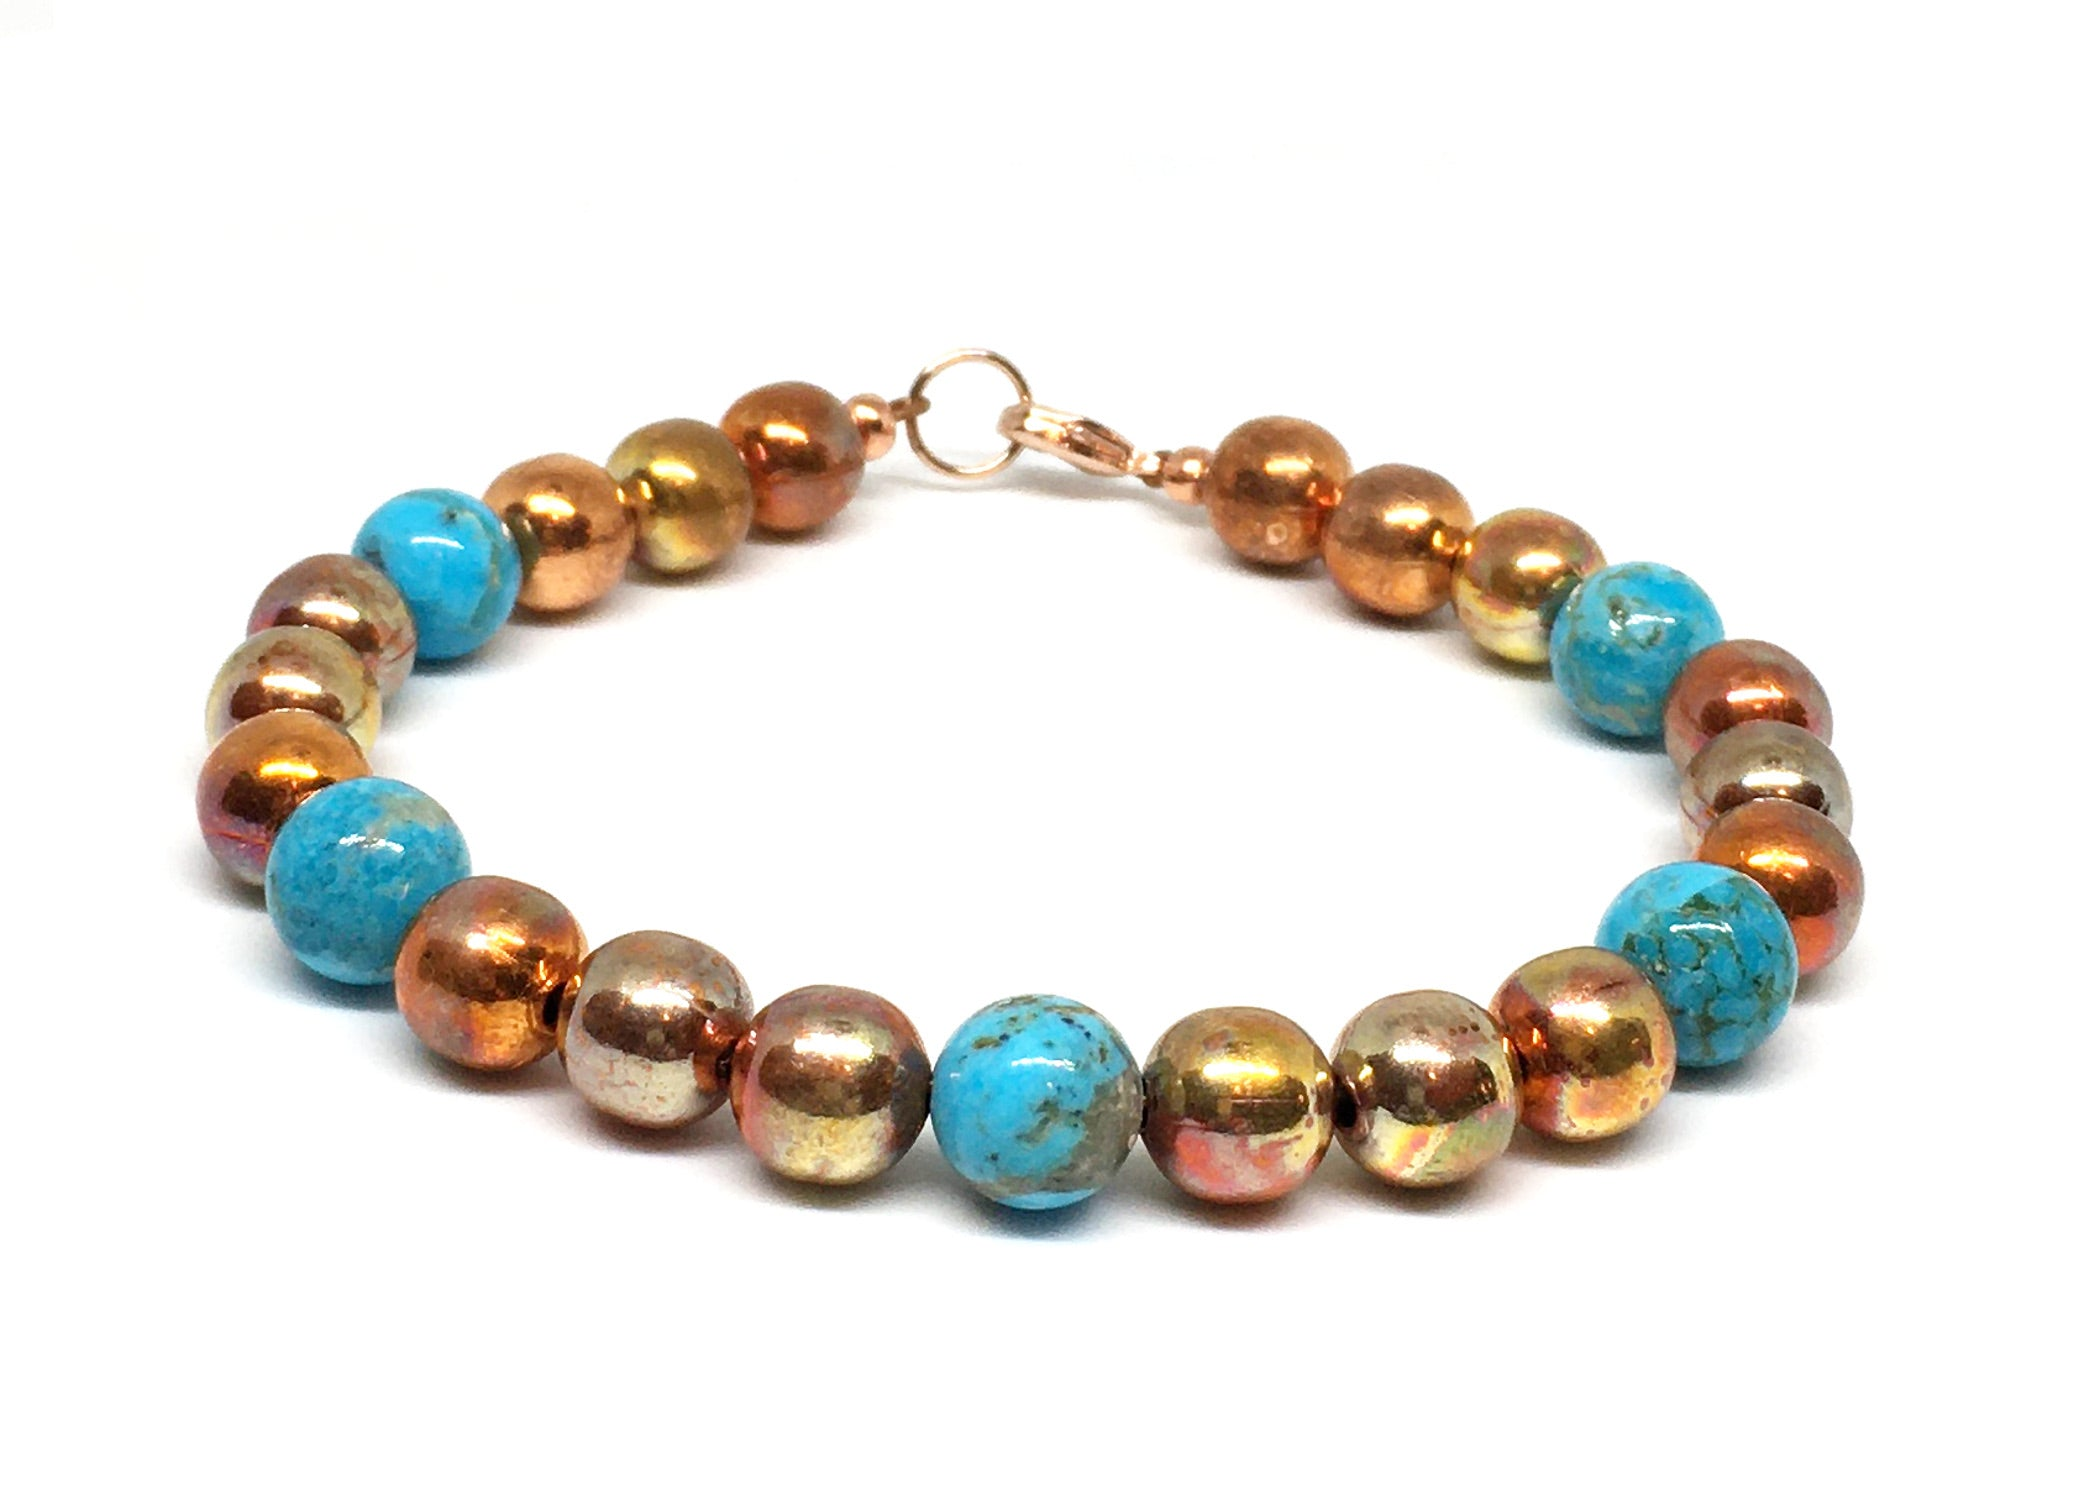 Kingman Turquoise and Flame Painted Copper Bead Bracelet - Sonoran Sunset Collection